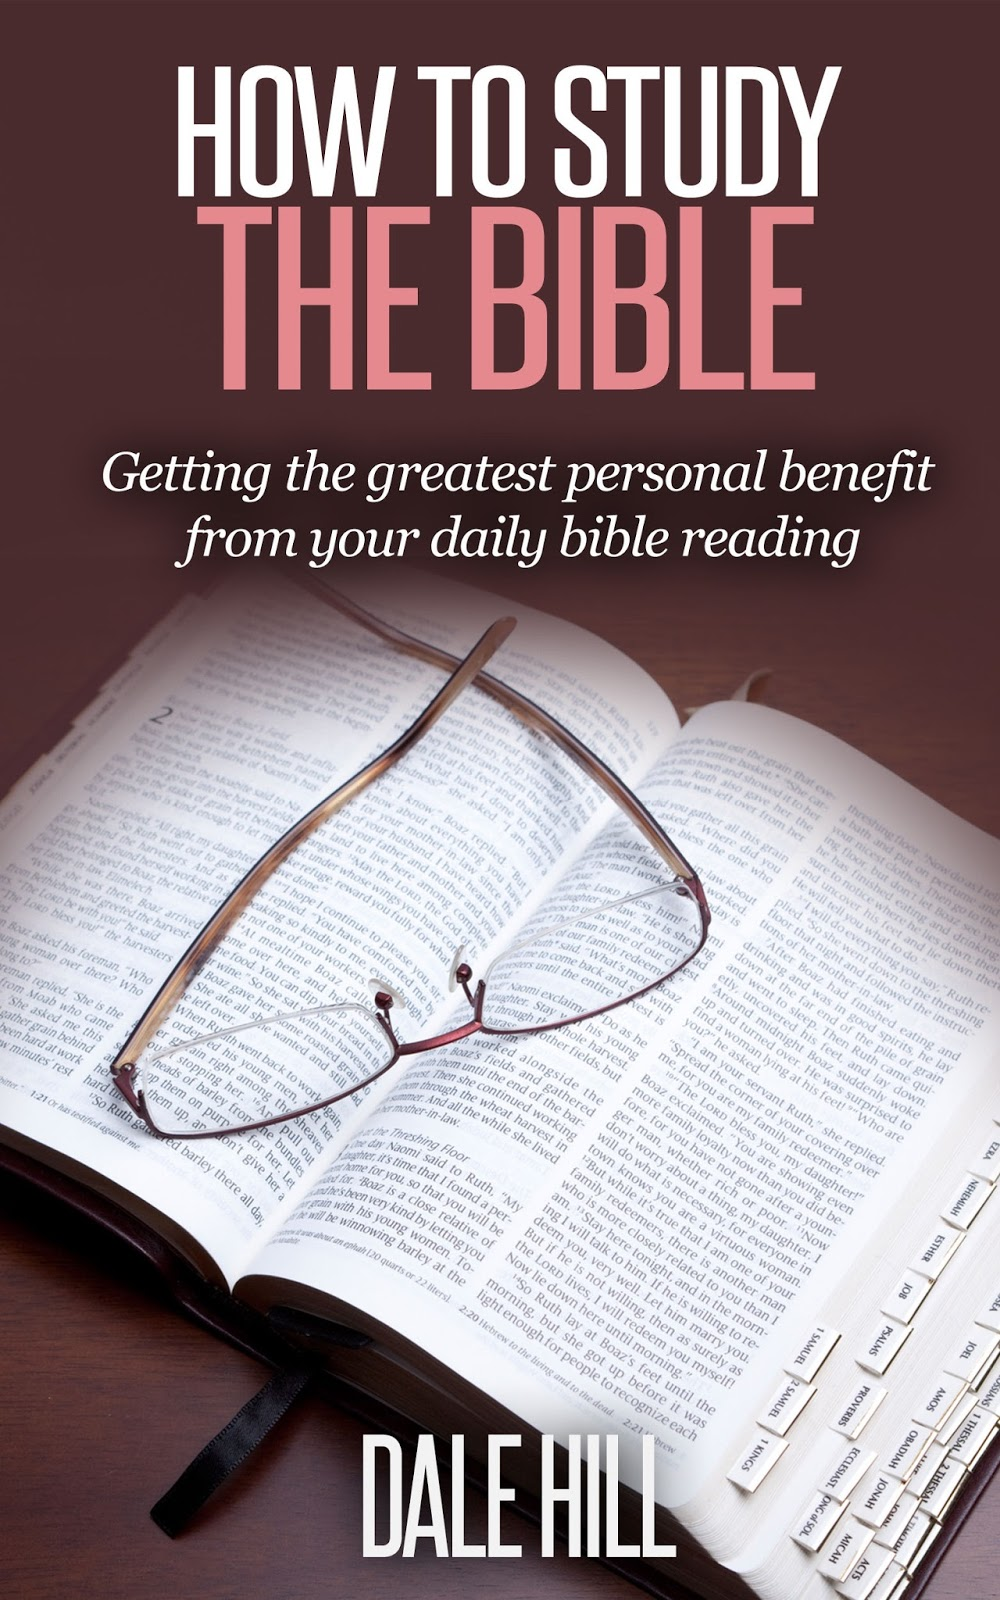 Practical Bible Teaching: HOW TO READ THE BIBLE